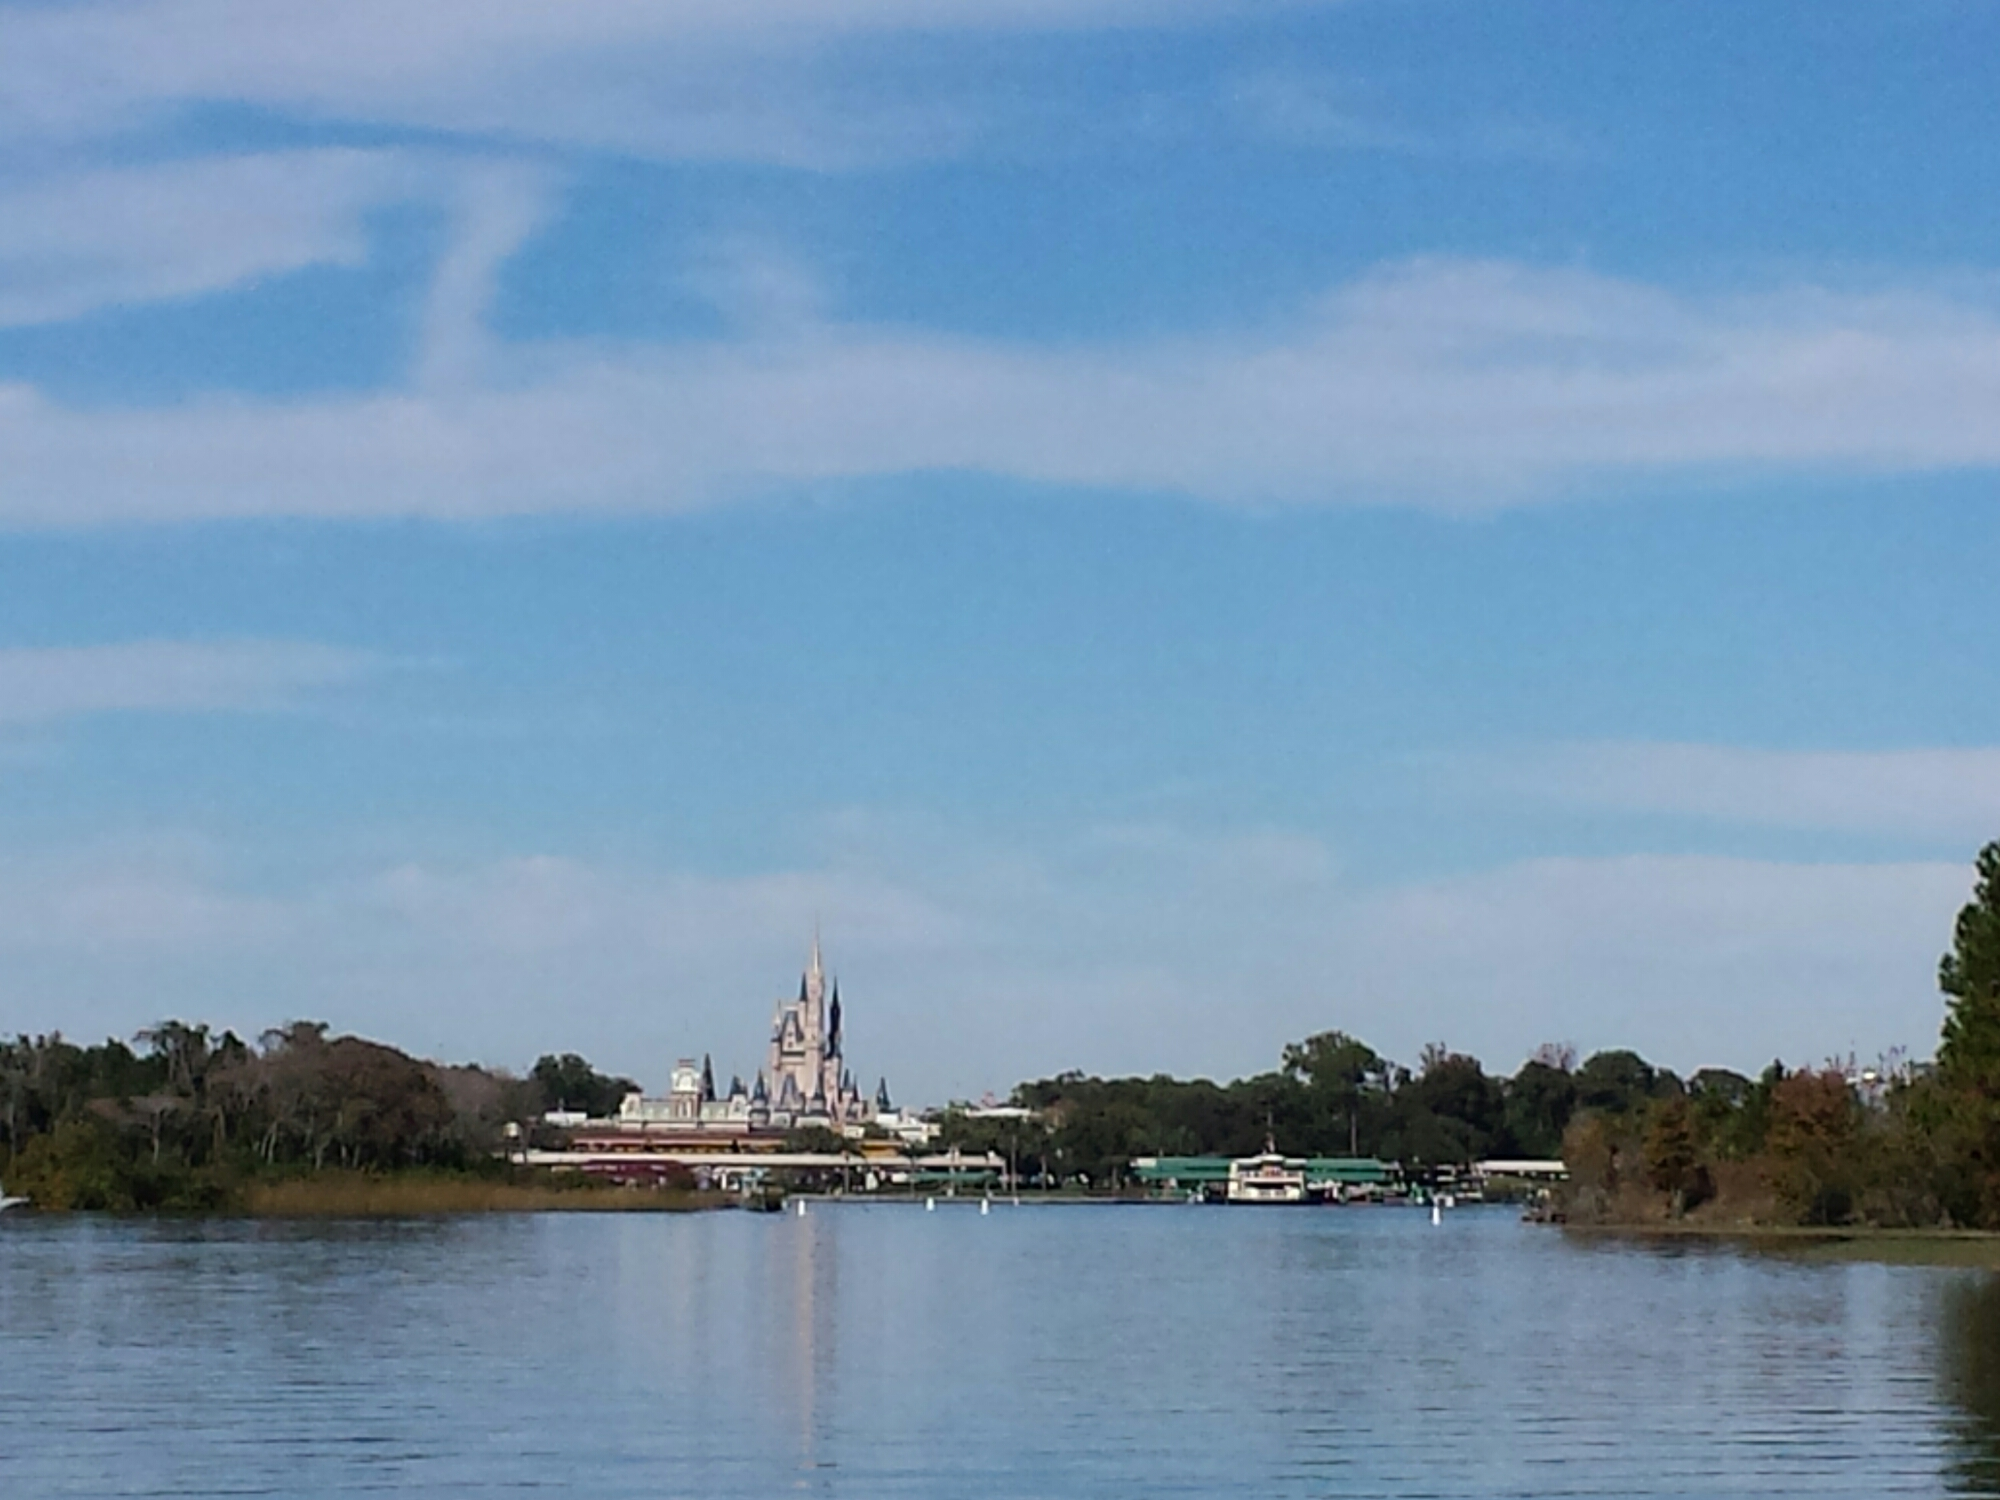 Ferry boat only right now at MK, express monorail is closed & only 1 ferry in operation #WDW